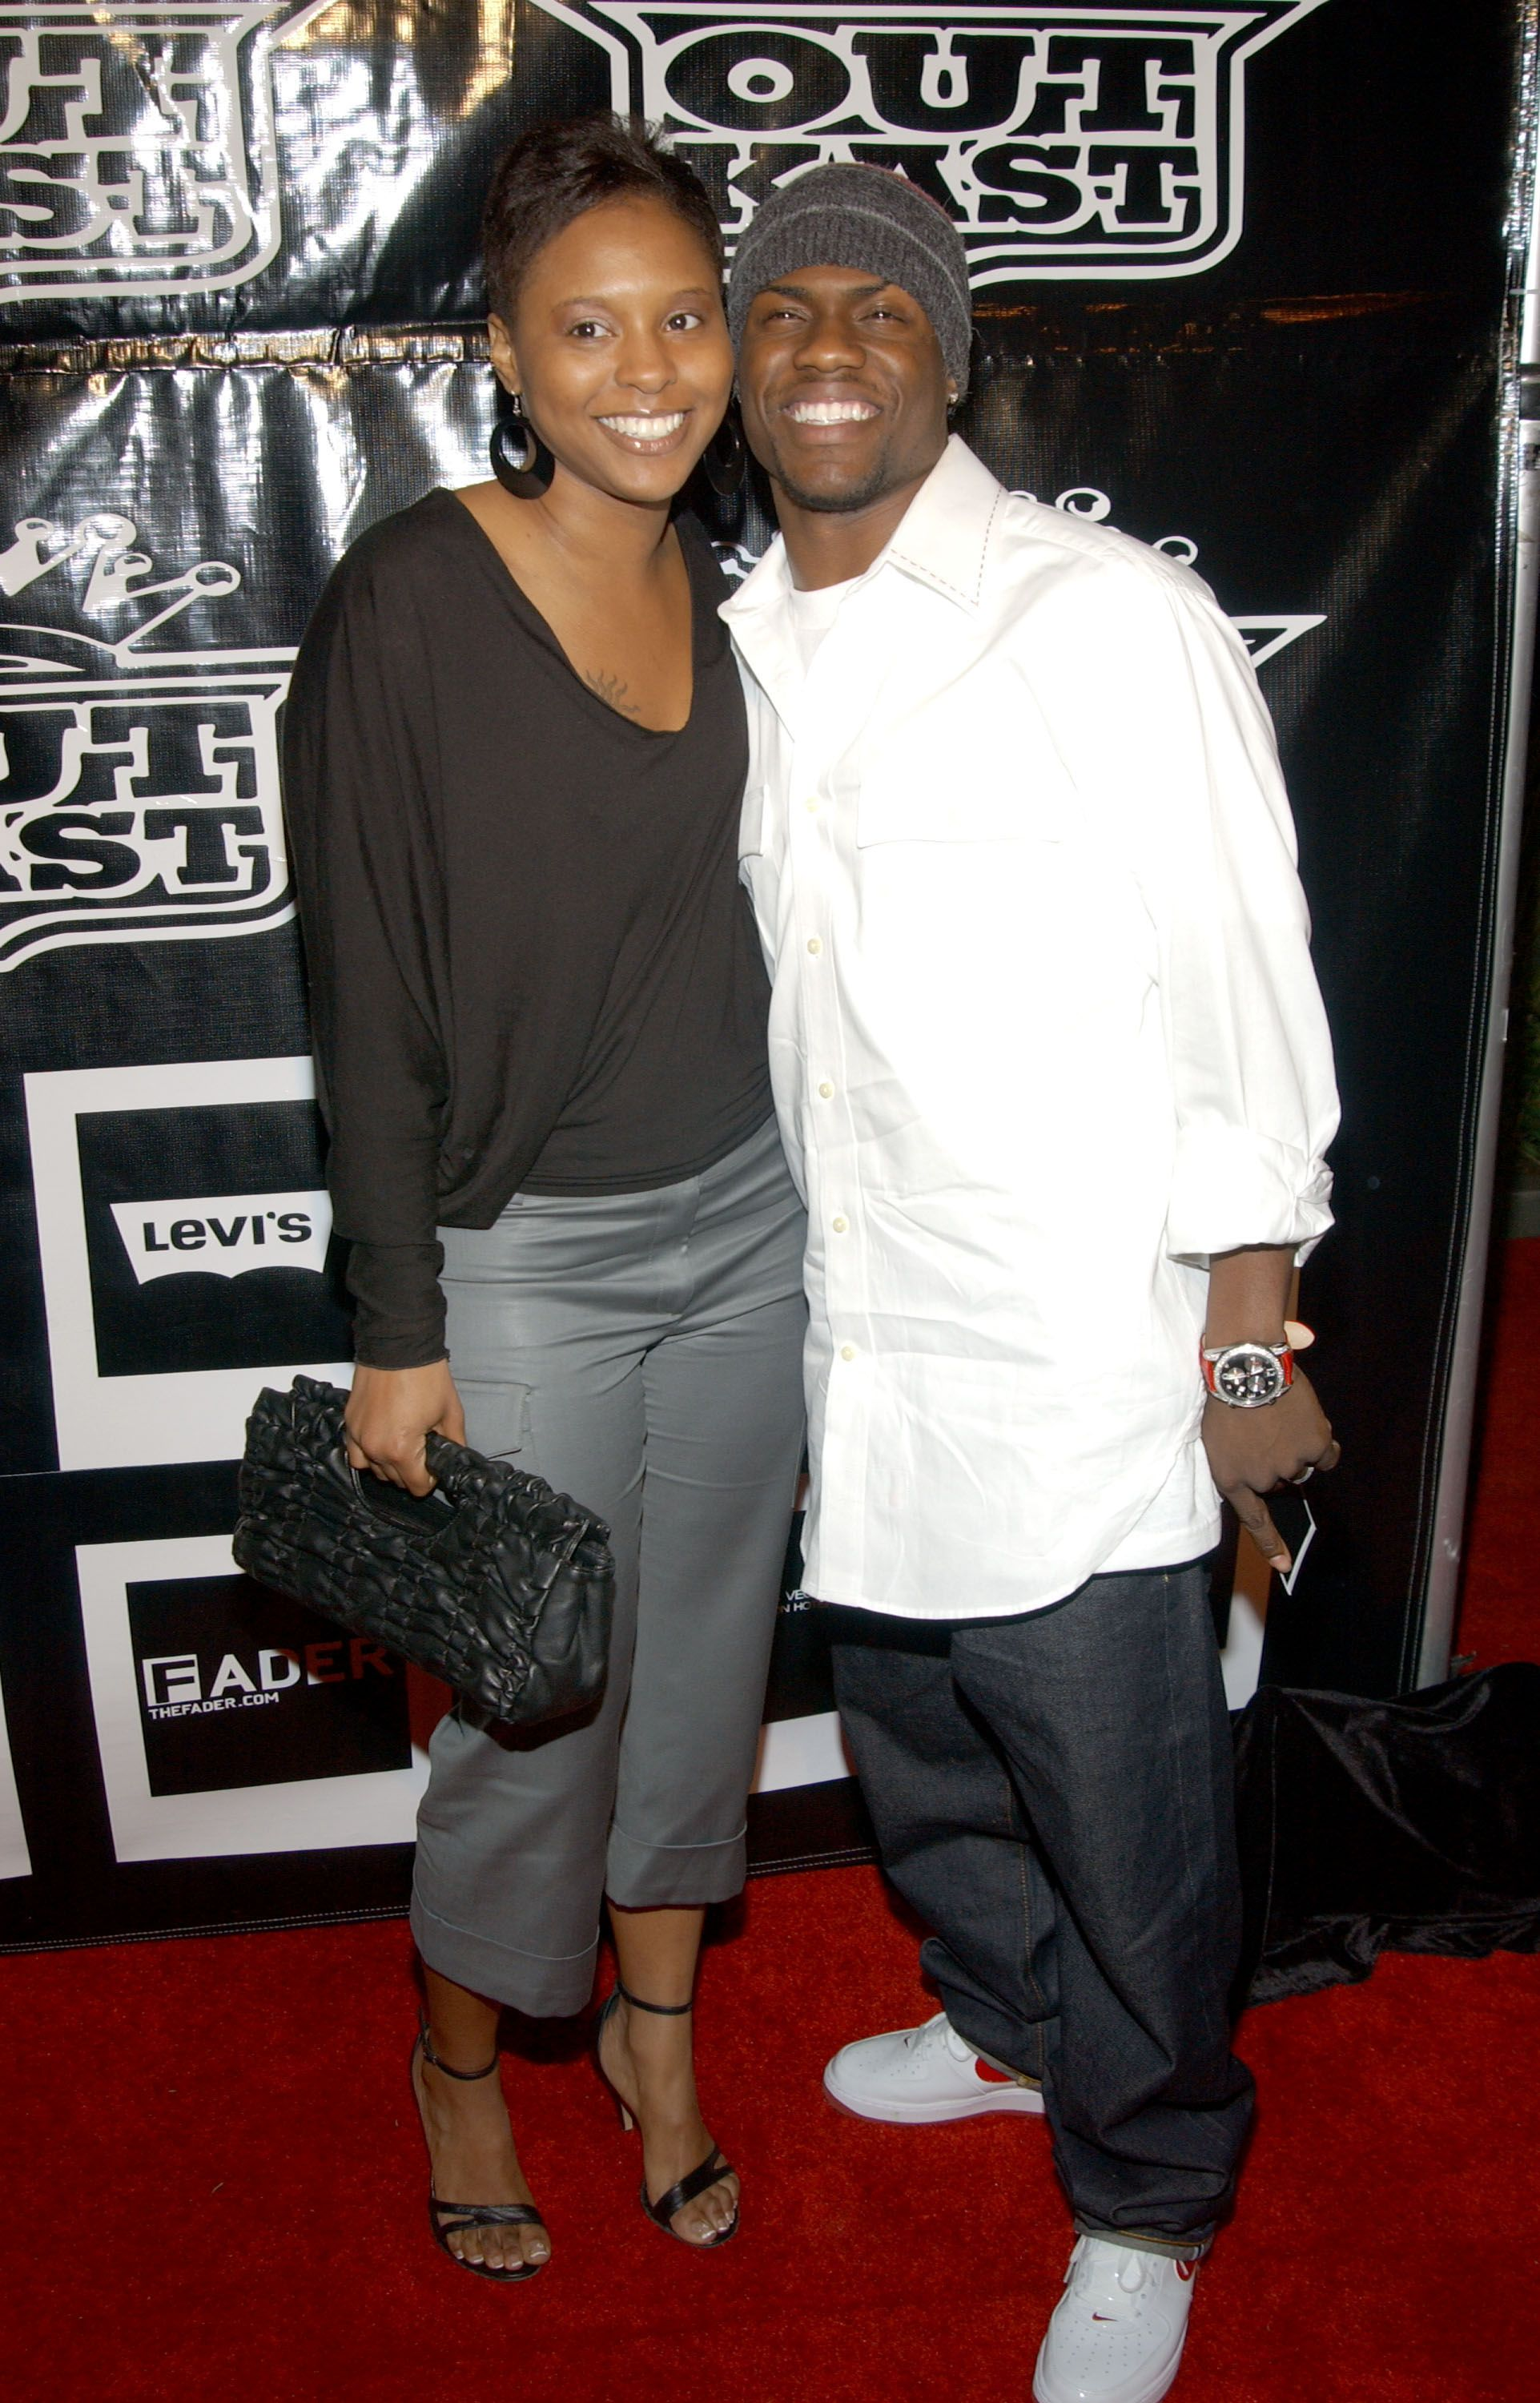 Kevin Hart and ex-wife Torrei during the Polaroid/OutKast 2004 Grammy party on February 08, 2004 | Photo: Getty Images